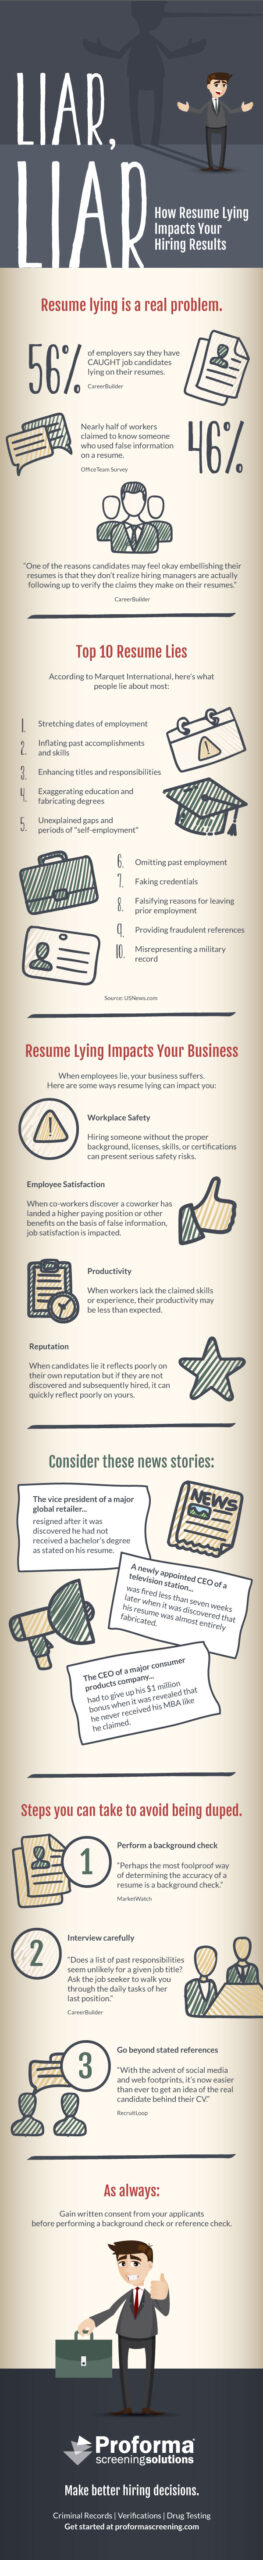 resume lying impacts your hiring results infographic dismissed for on pss final best Resume Dismissed For Lying On Resume